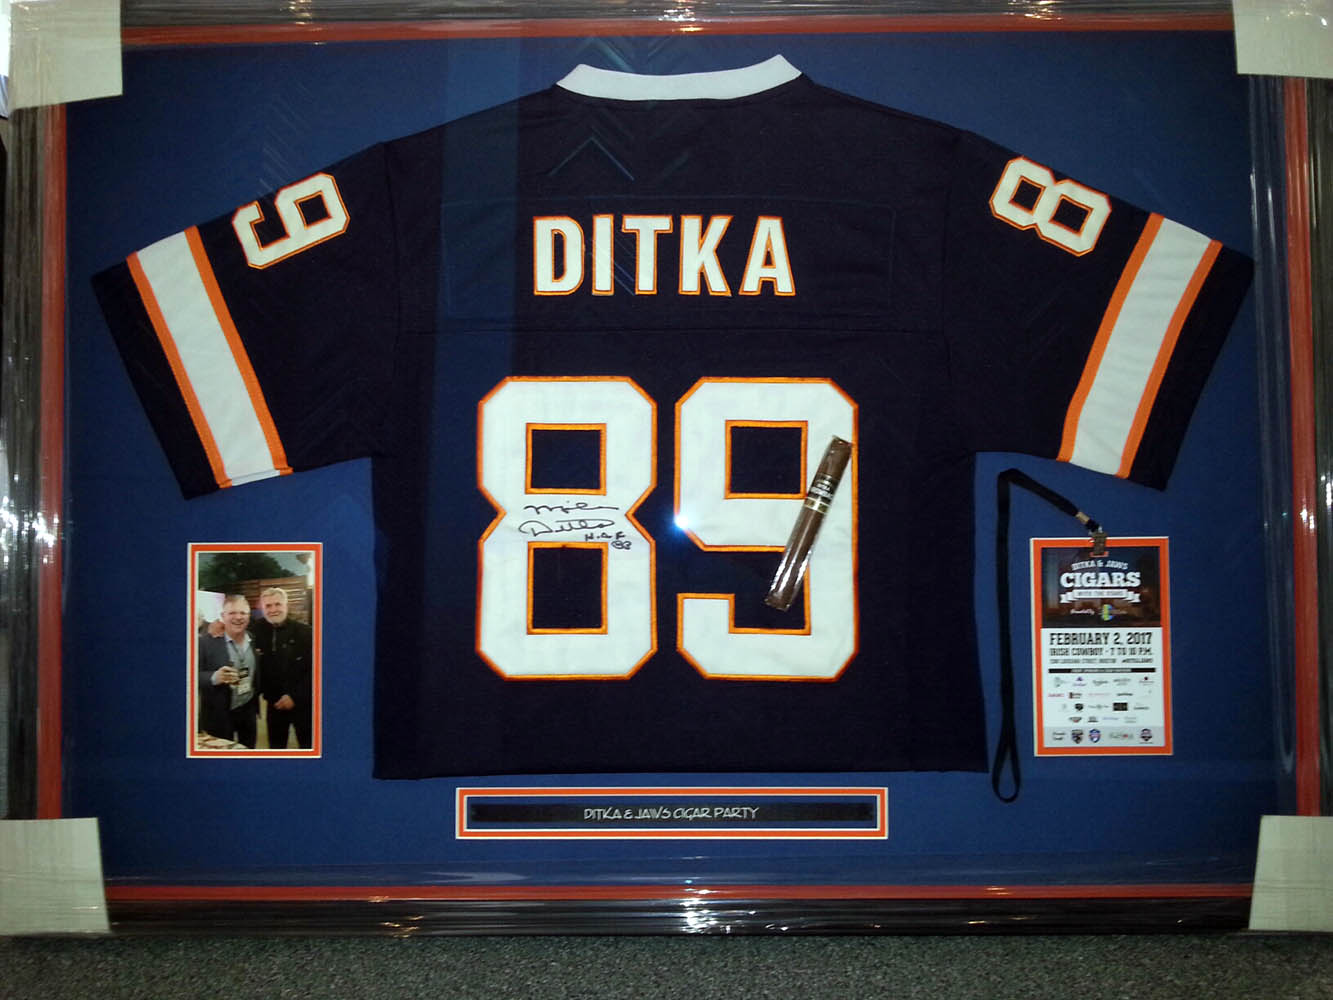 Sports jersey from mike ditka's superbowl cigar party